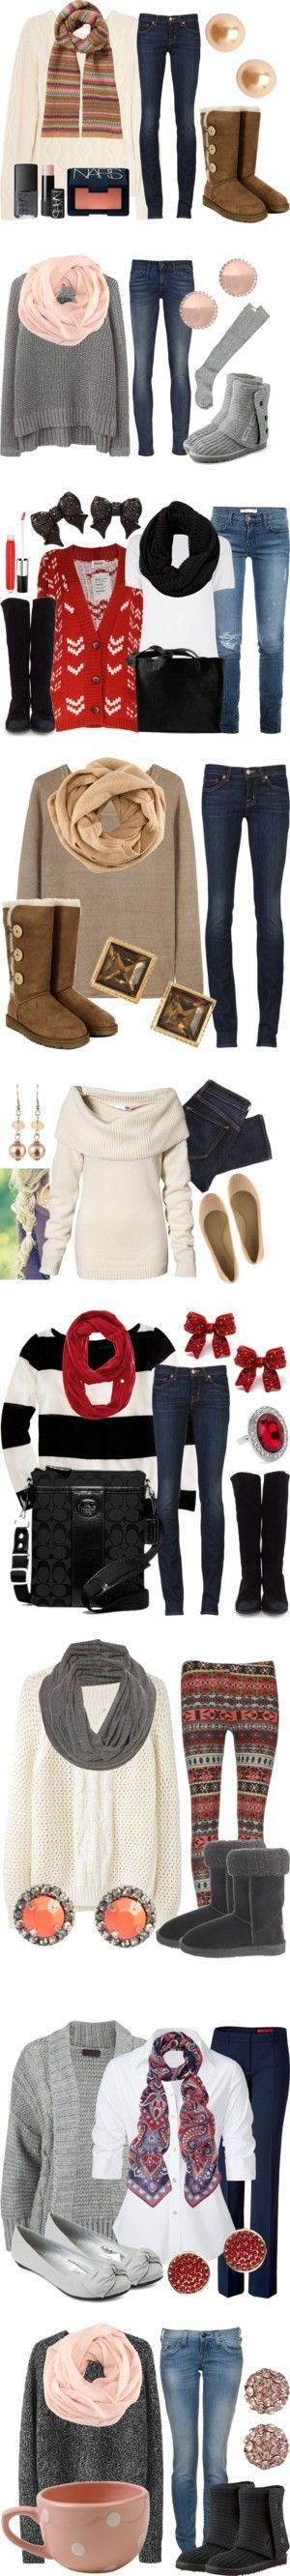 Cute fall/winter outfits.: